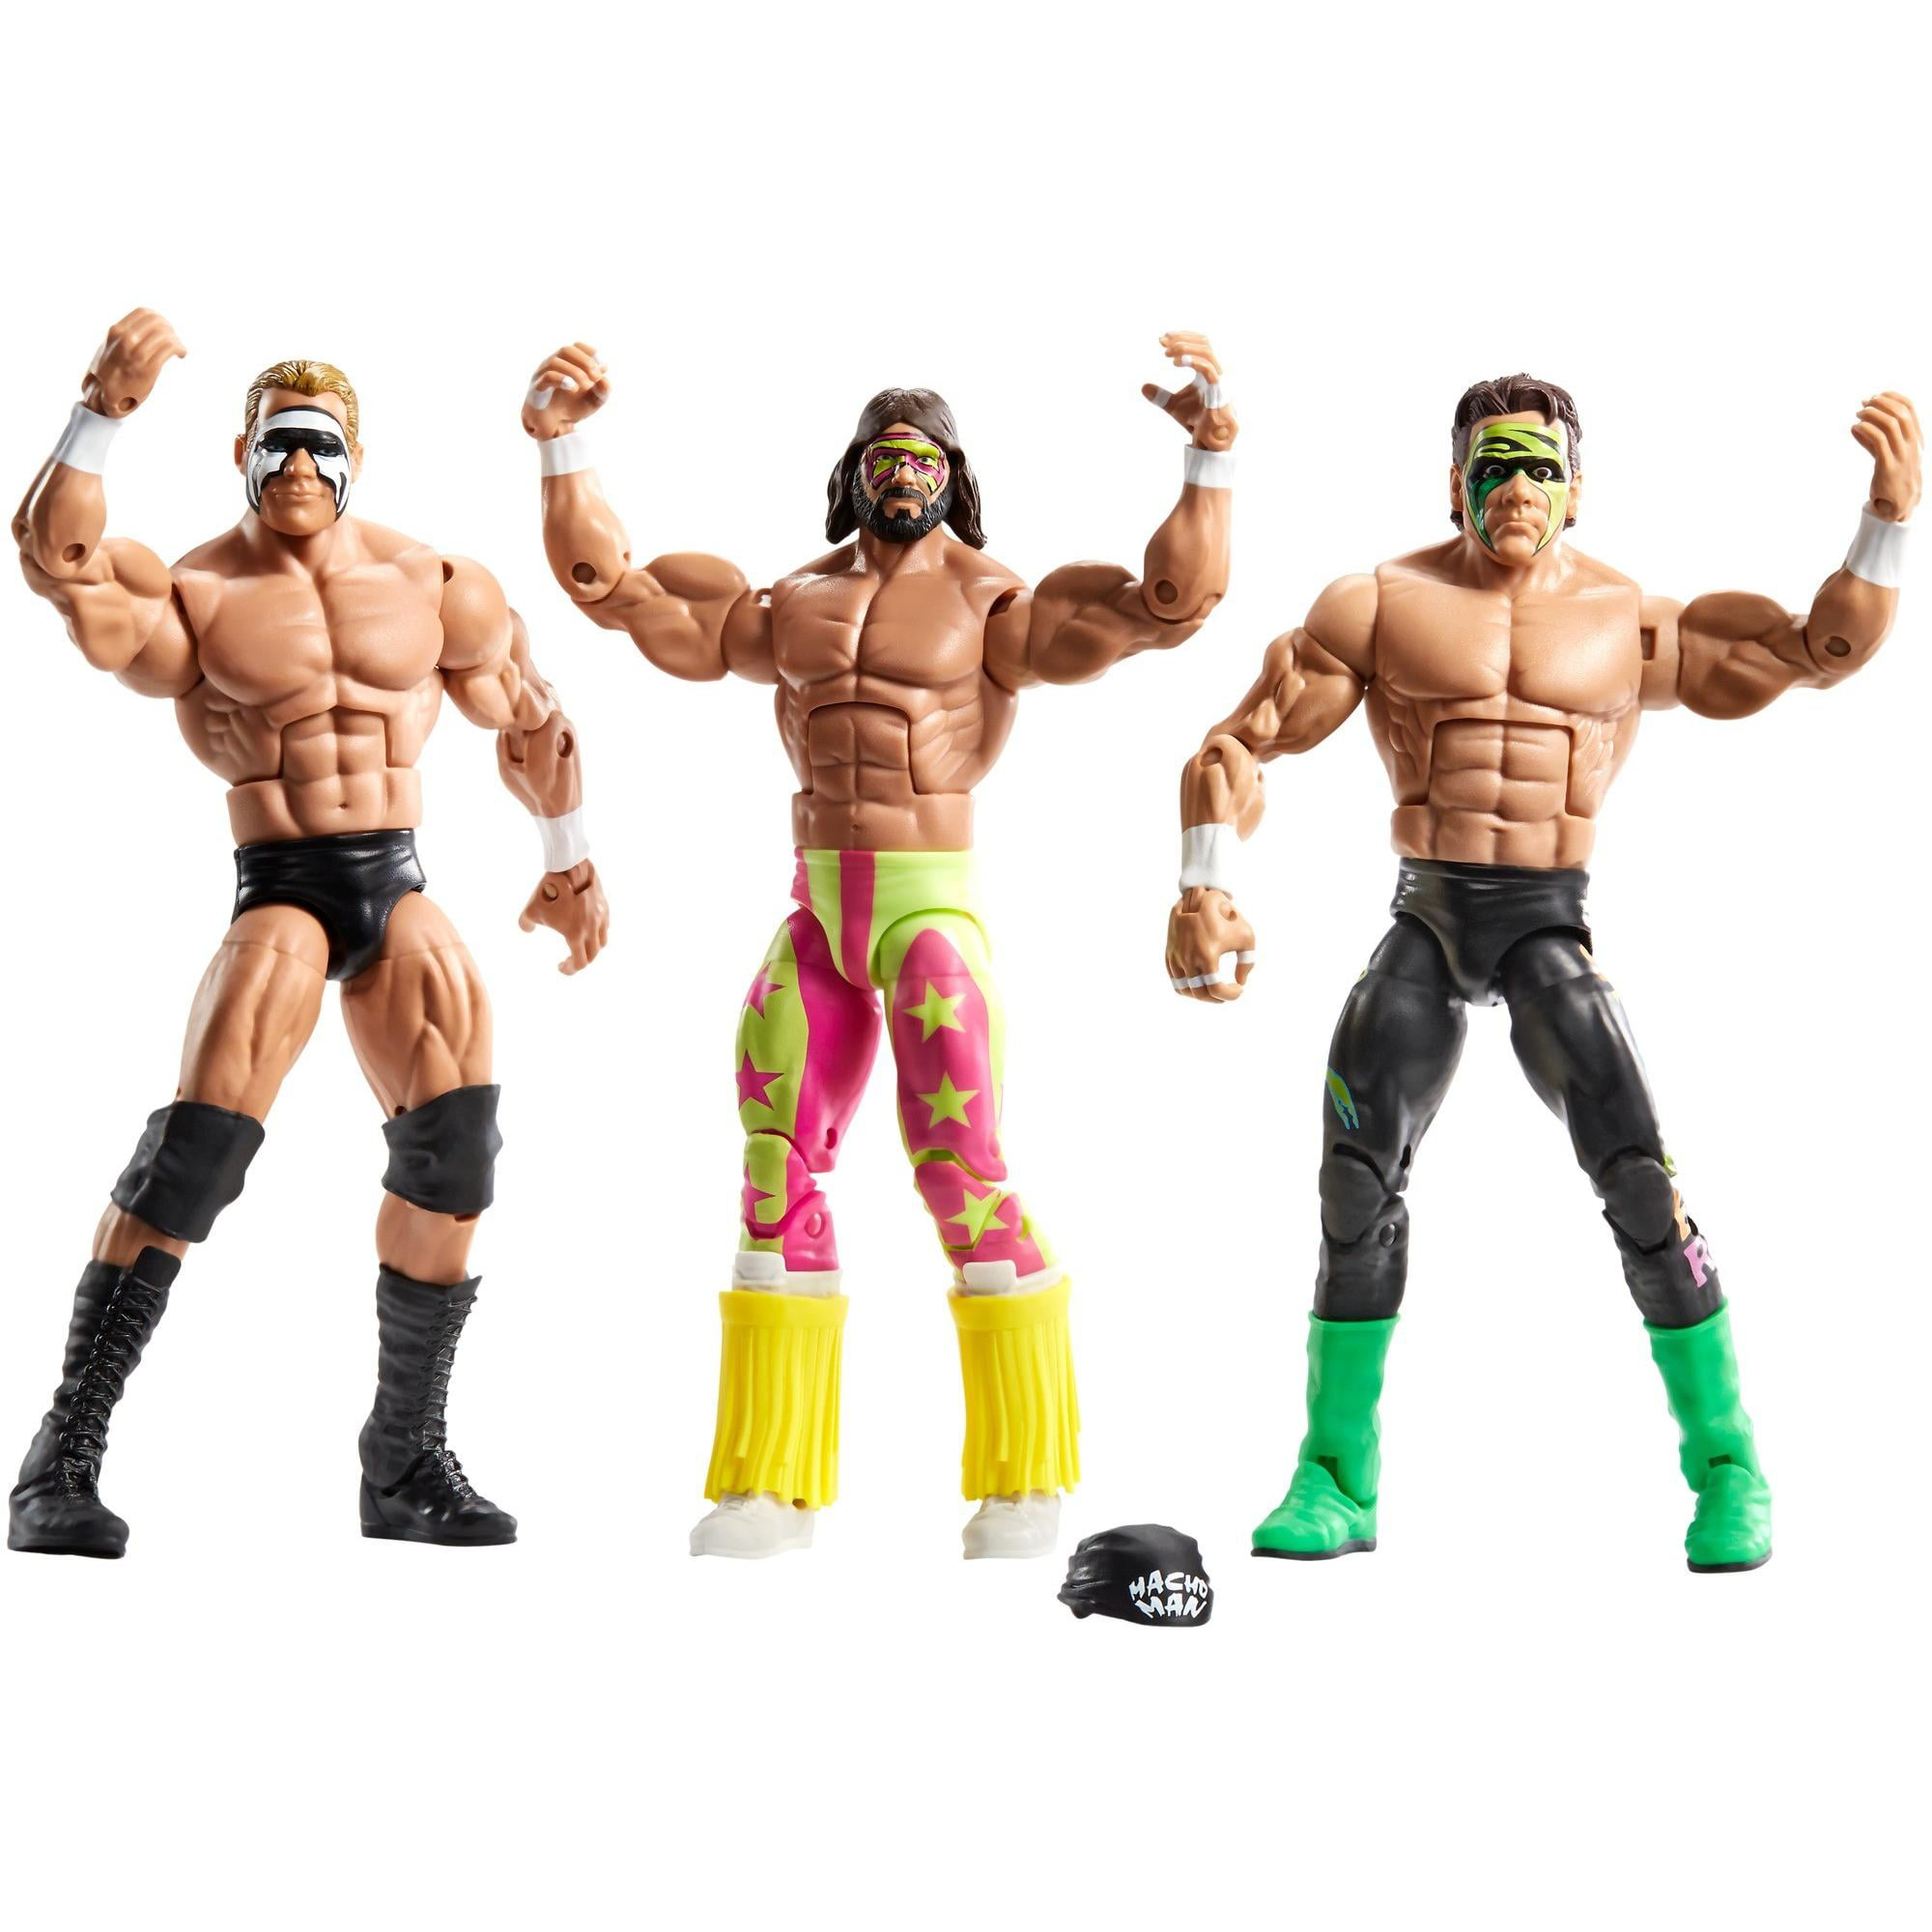 WWE Then, Now & Forever Bash At The Beach 3-Pack by Mattel